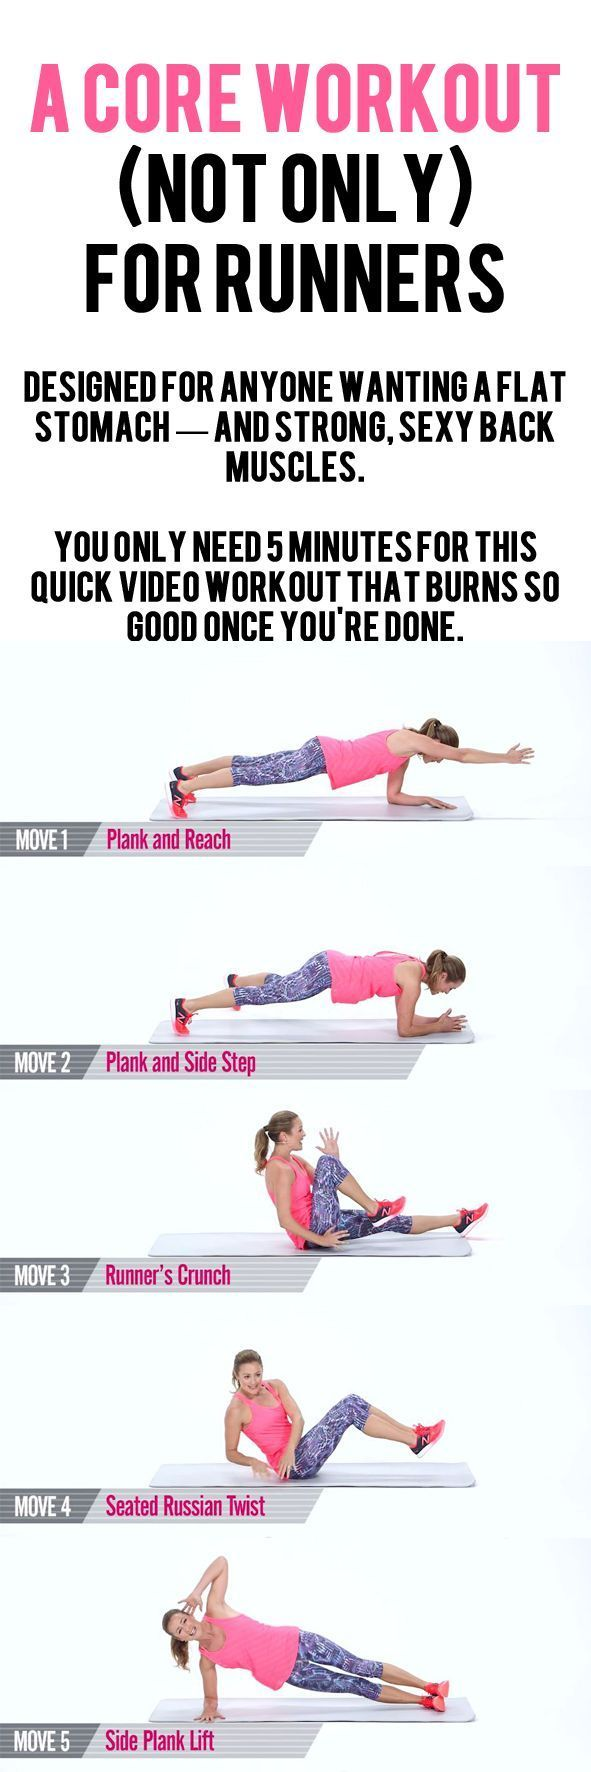 Four simple exercises to get the perfect belly in just 4 weeks, you only need to eat healthy and exercises regularly. You can achieve great results if you try!